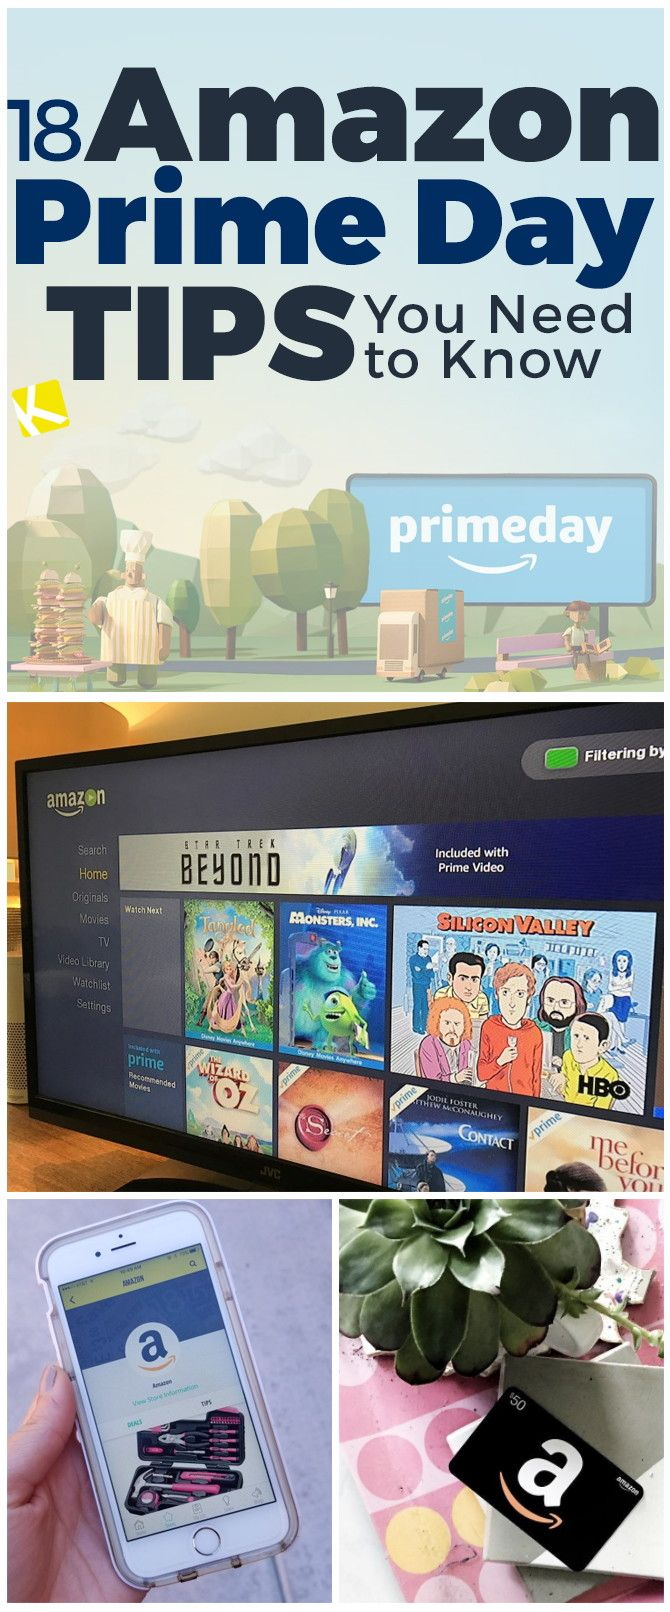 Are you ready for the big day? Check out these Amazon Prime Day shopping tips.